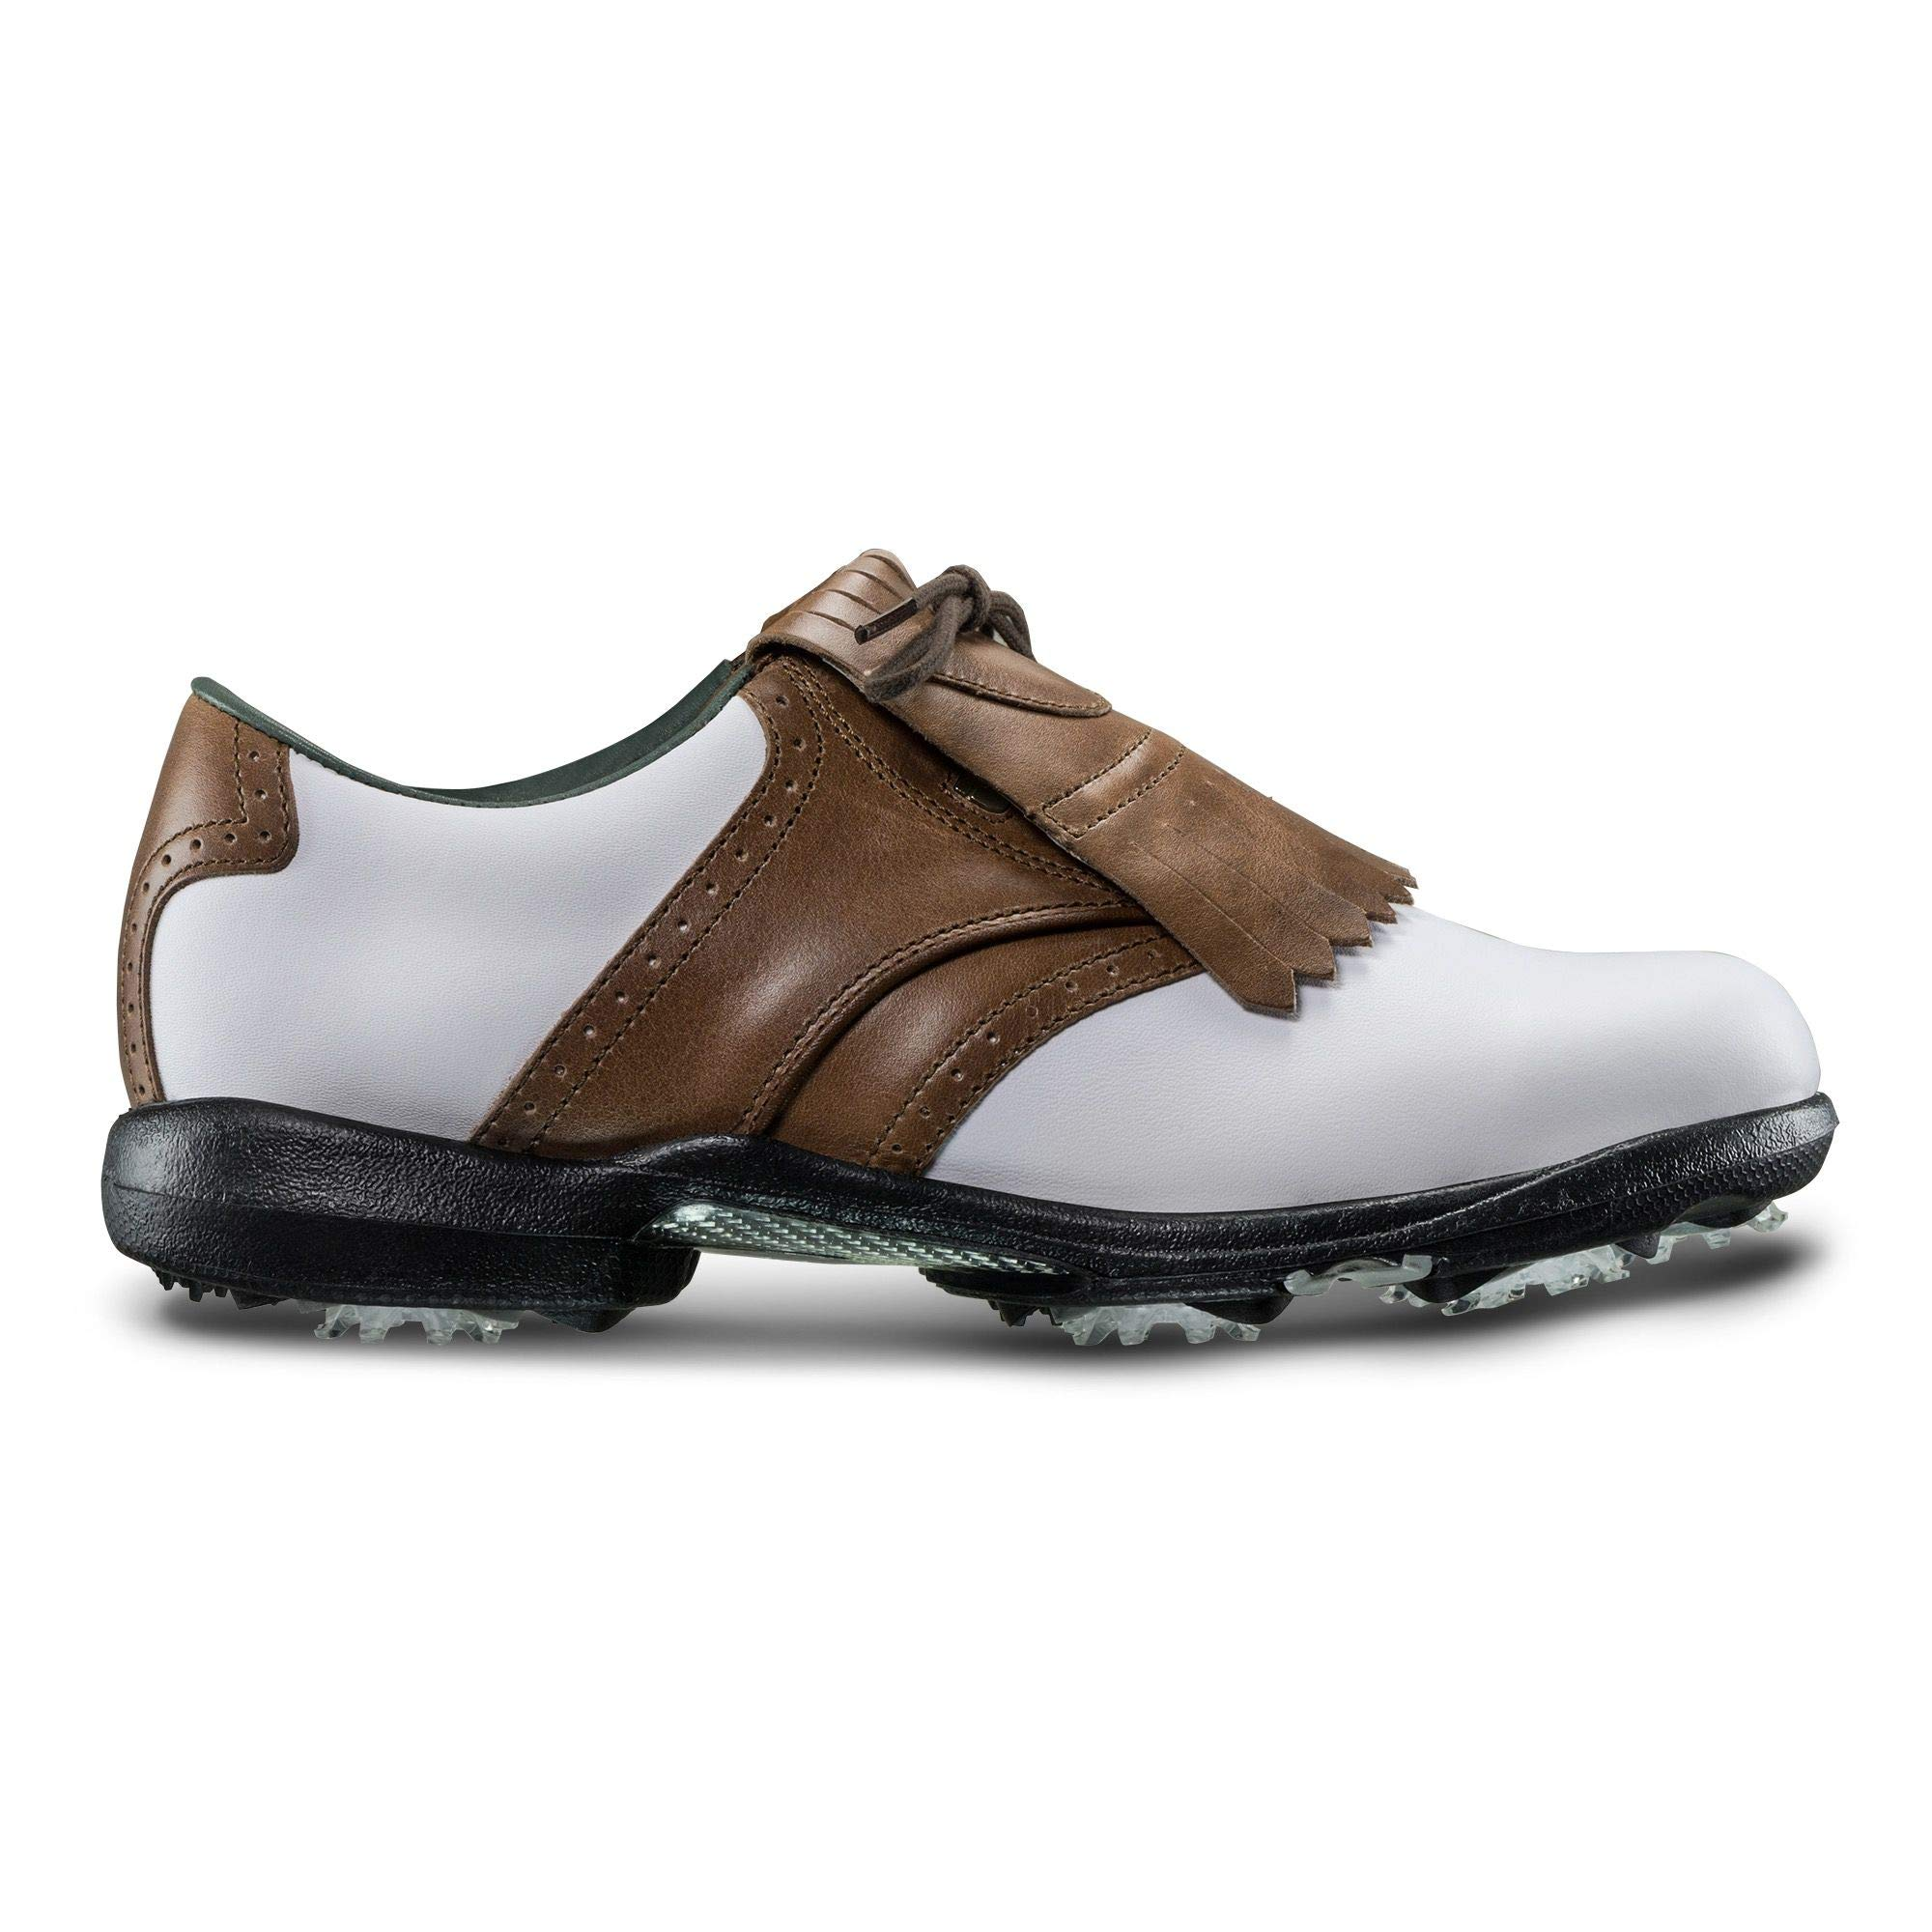 FootJoy Women's DryJoys Golf Shoes White 9.5 W Luggage Brown, US by FootJoy